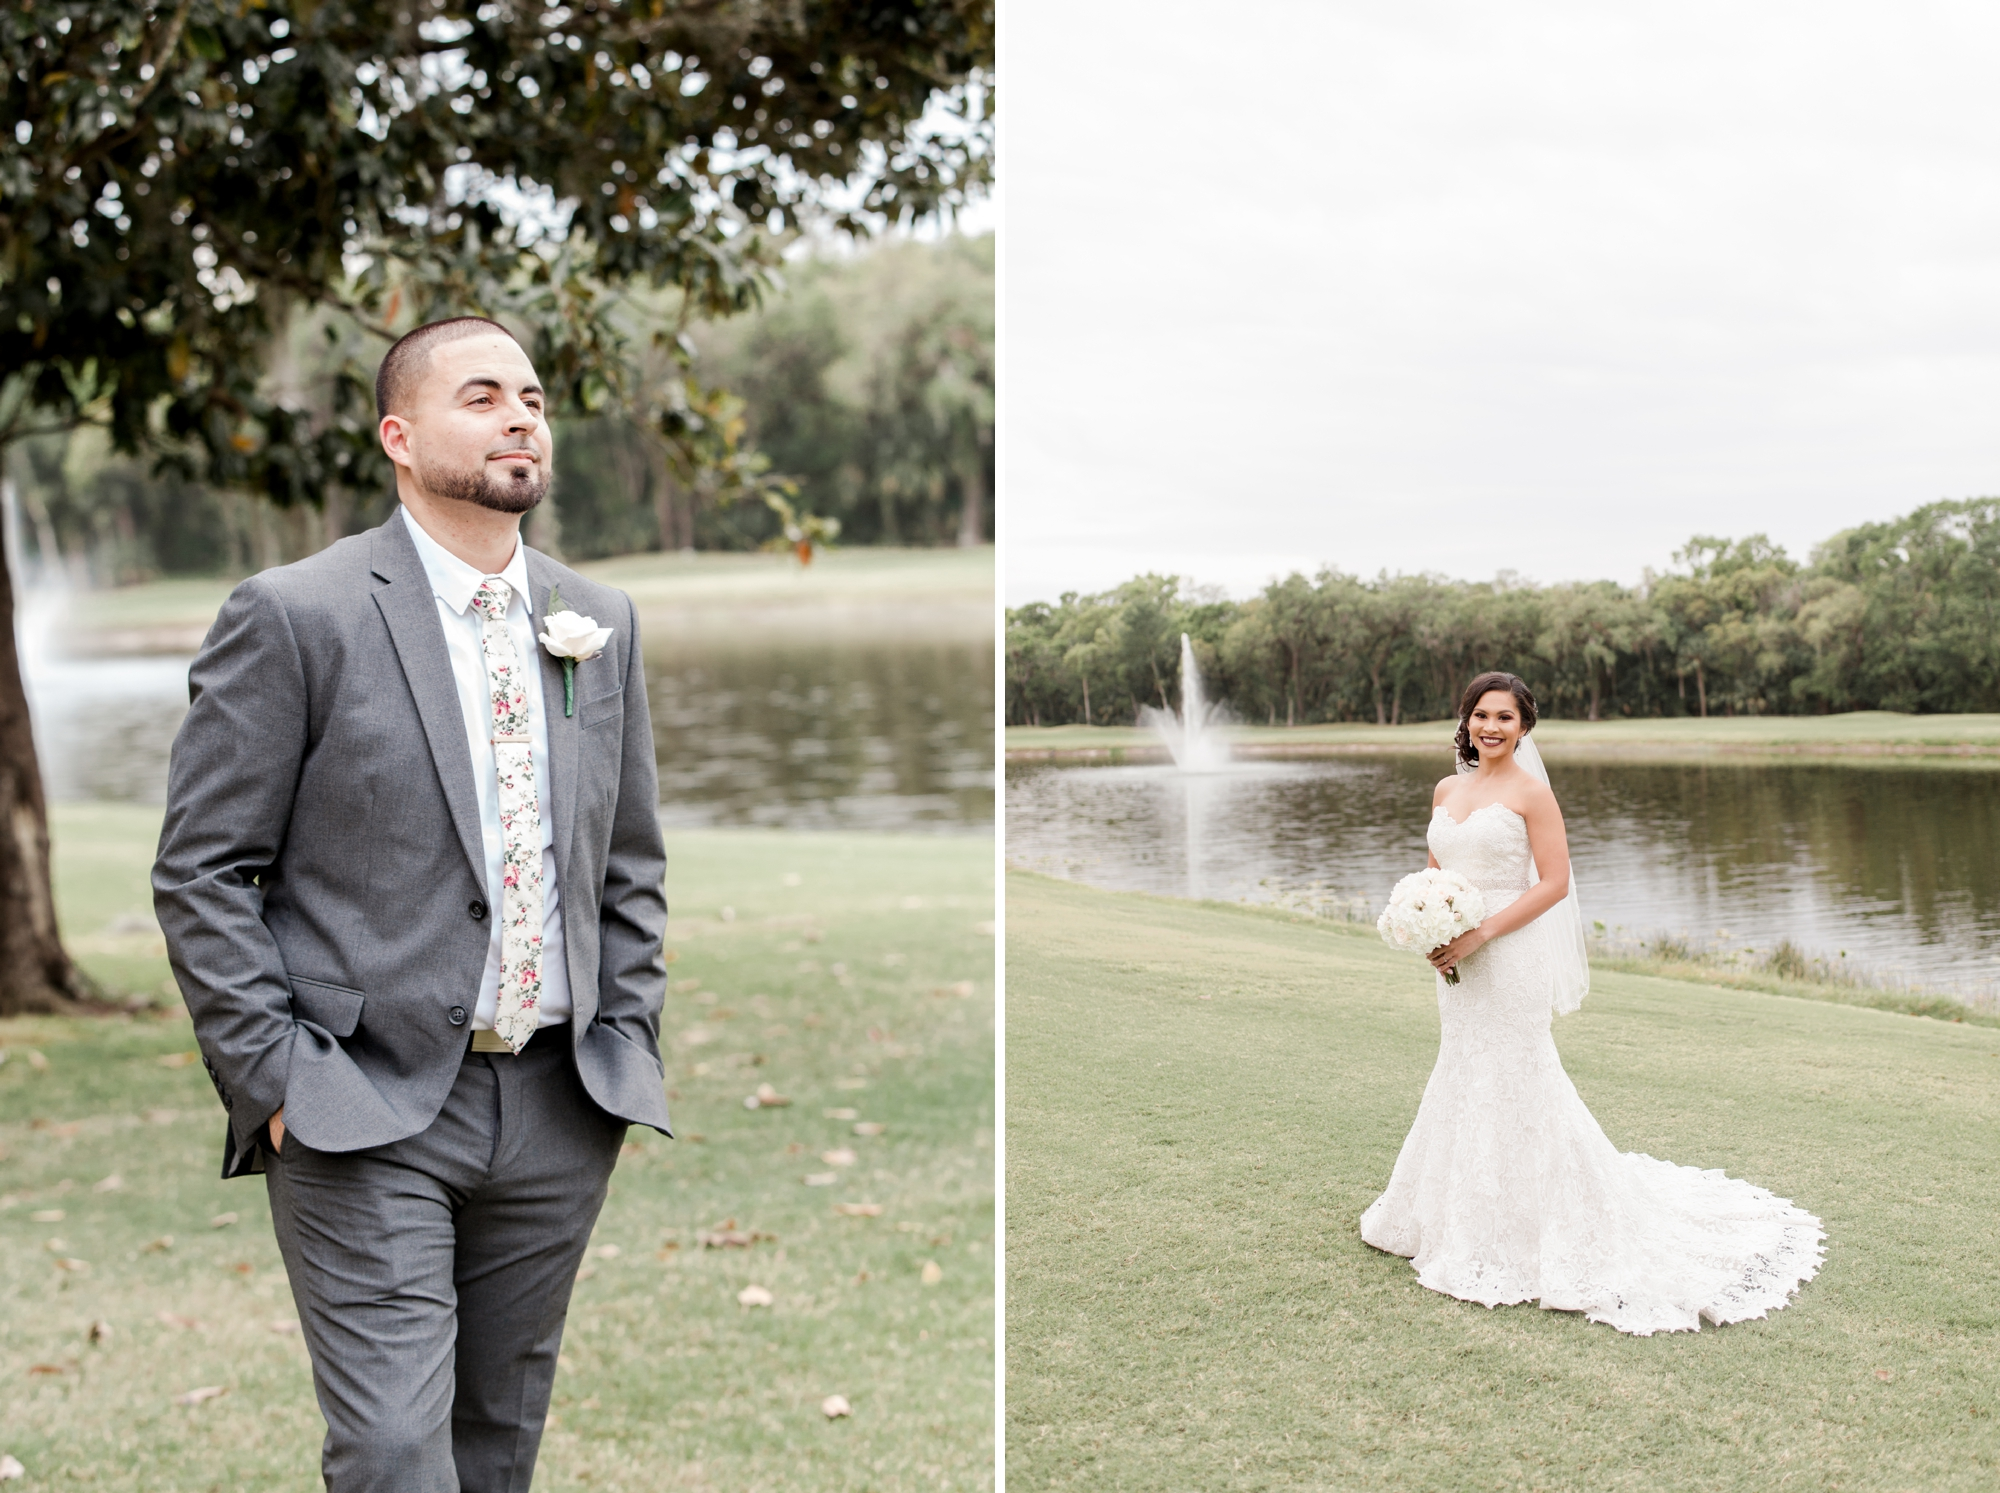 tampa-palms-wedding-christina-luis-IMG_0276.jpg